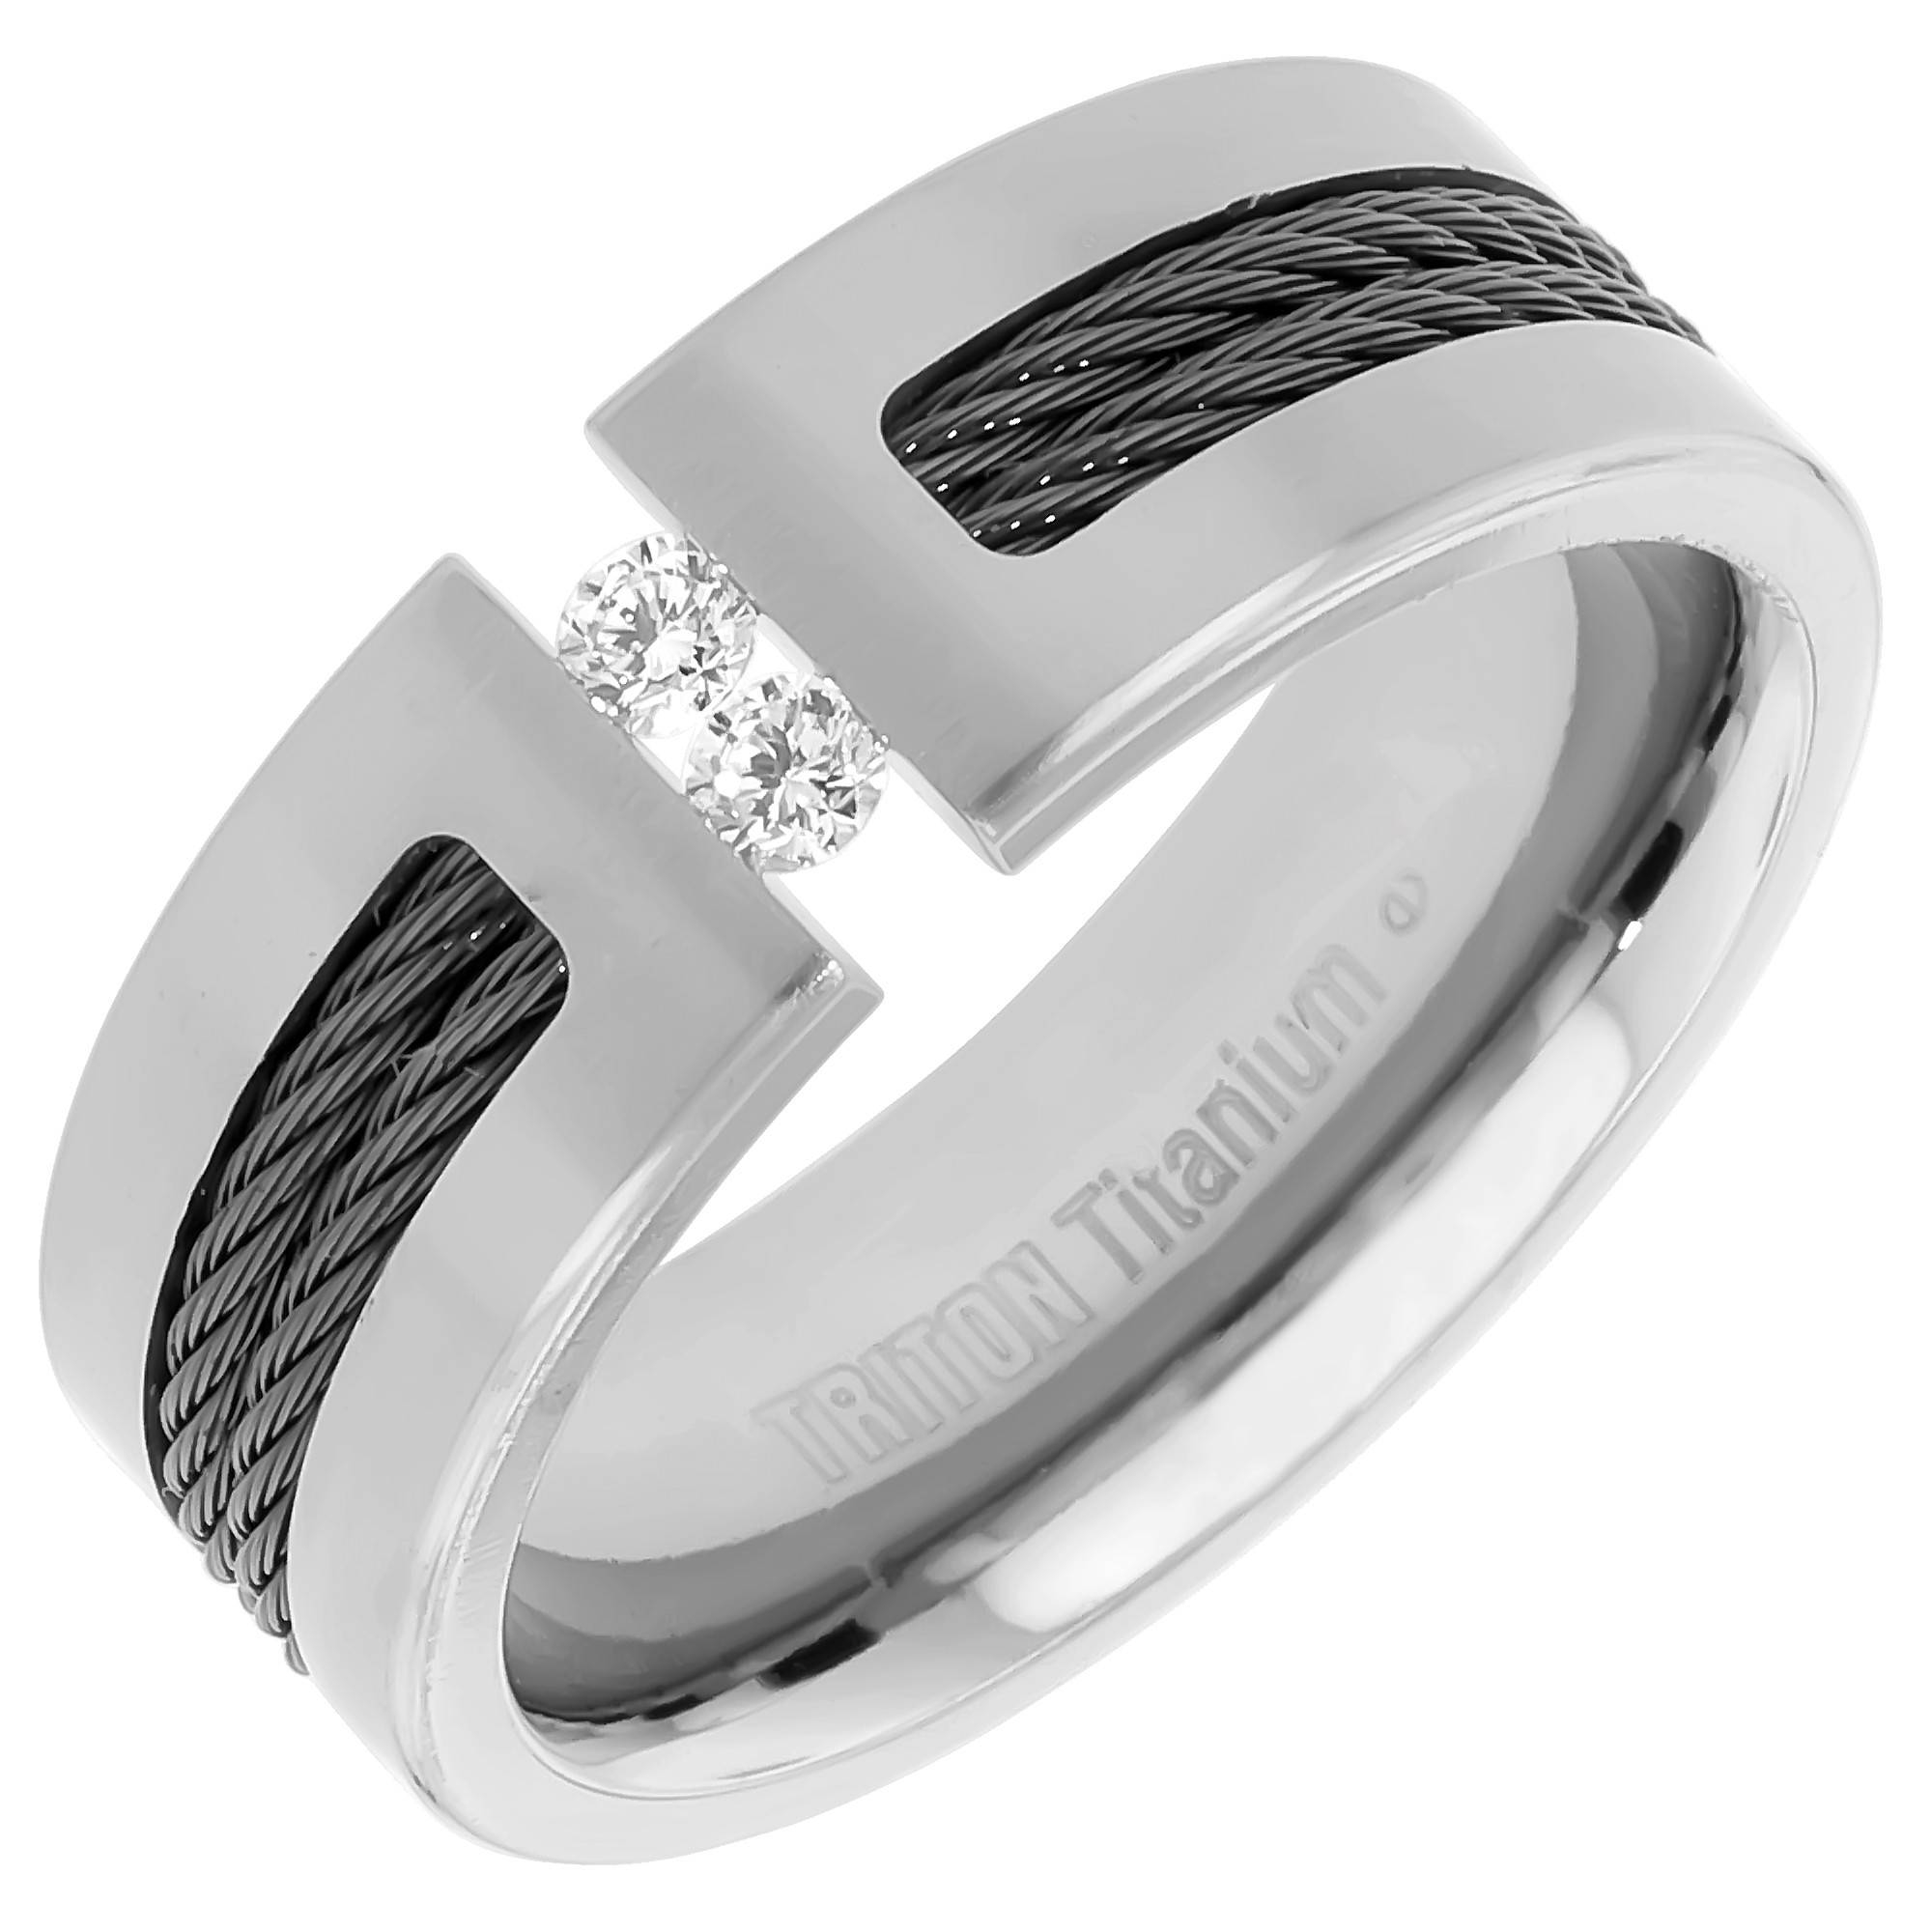 Mens Diamond Wedding Band In Titanium (8Mm) With Regard To Male Wedding Bands With Diamonds (Gallery 4 of 15)